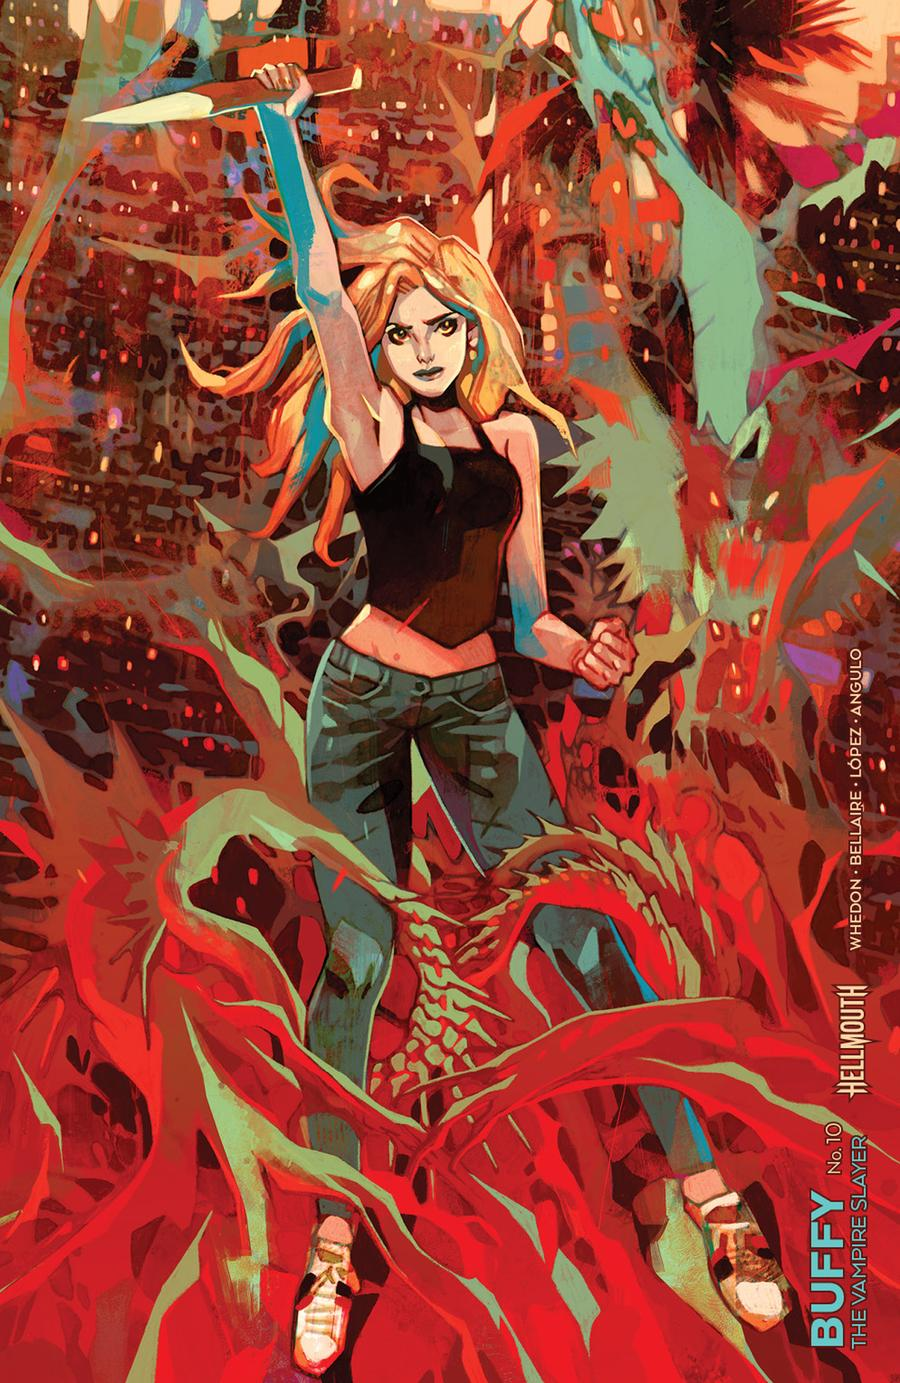 Buffy The Vampire Slayer Vol 2 #10 Cover C Variant Jakub Rebelka Connecting Cover (Hellmouth Tie-In)